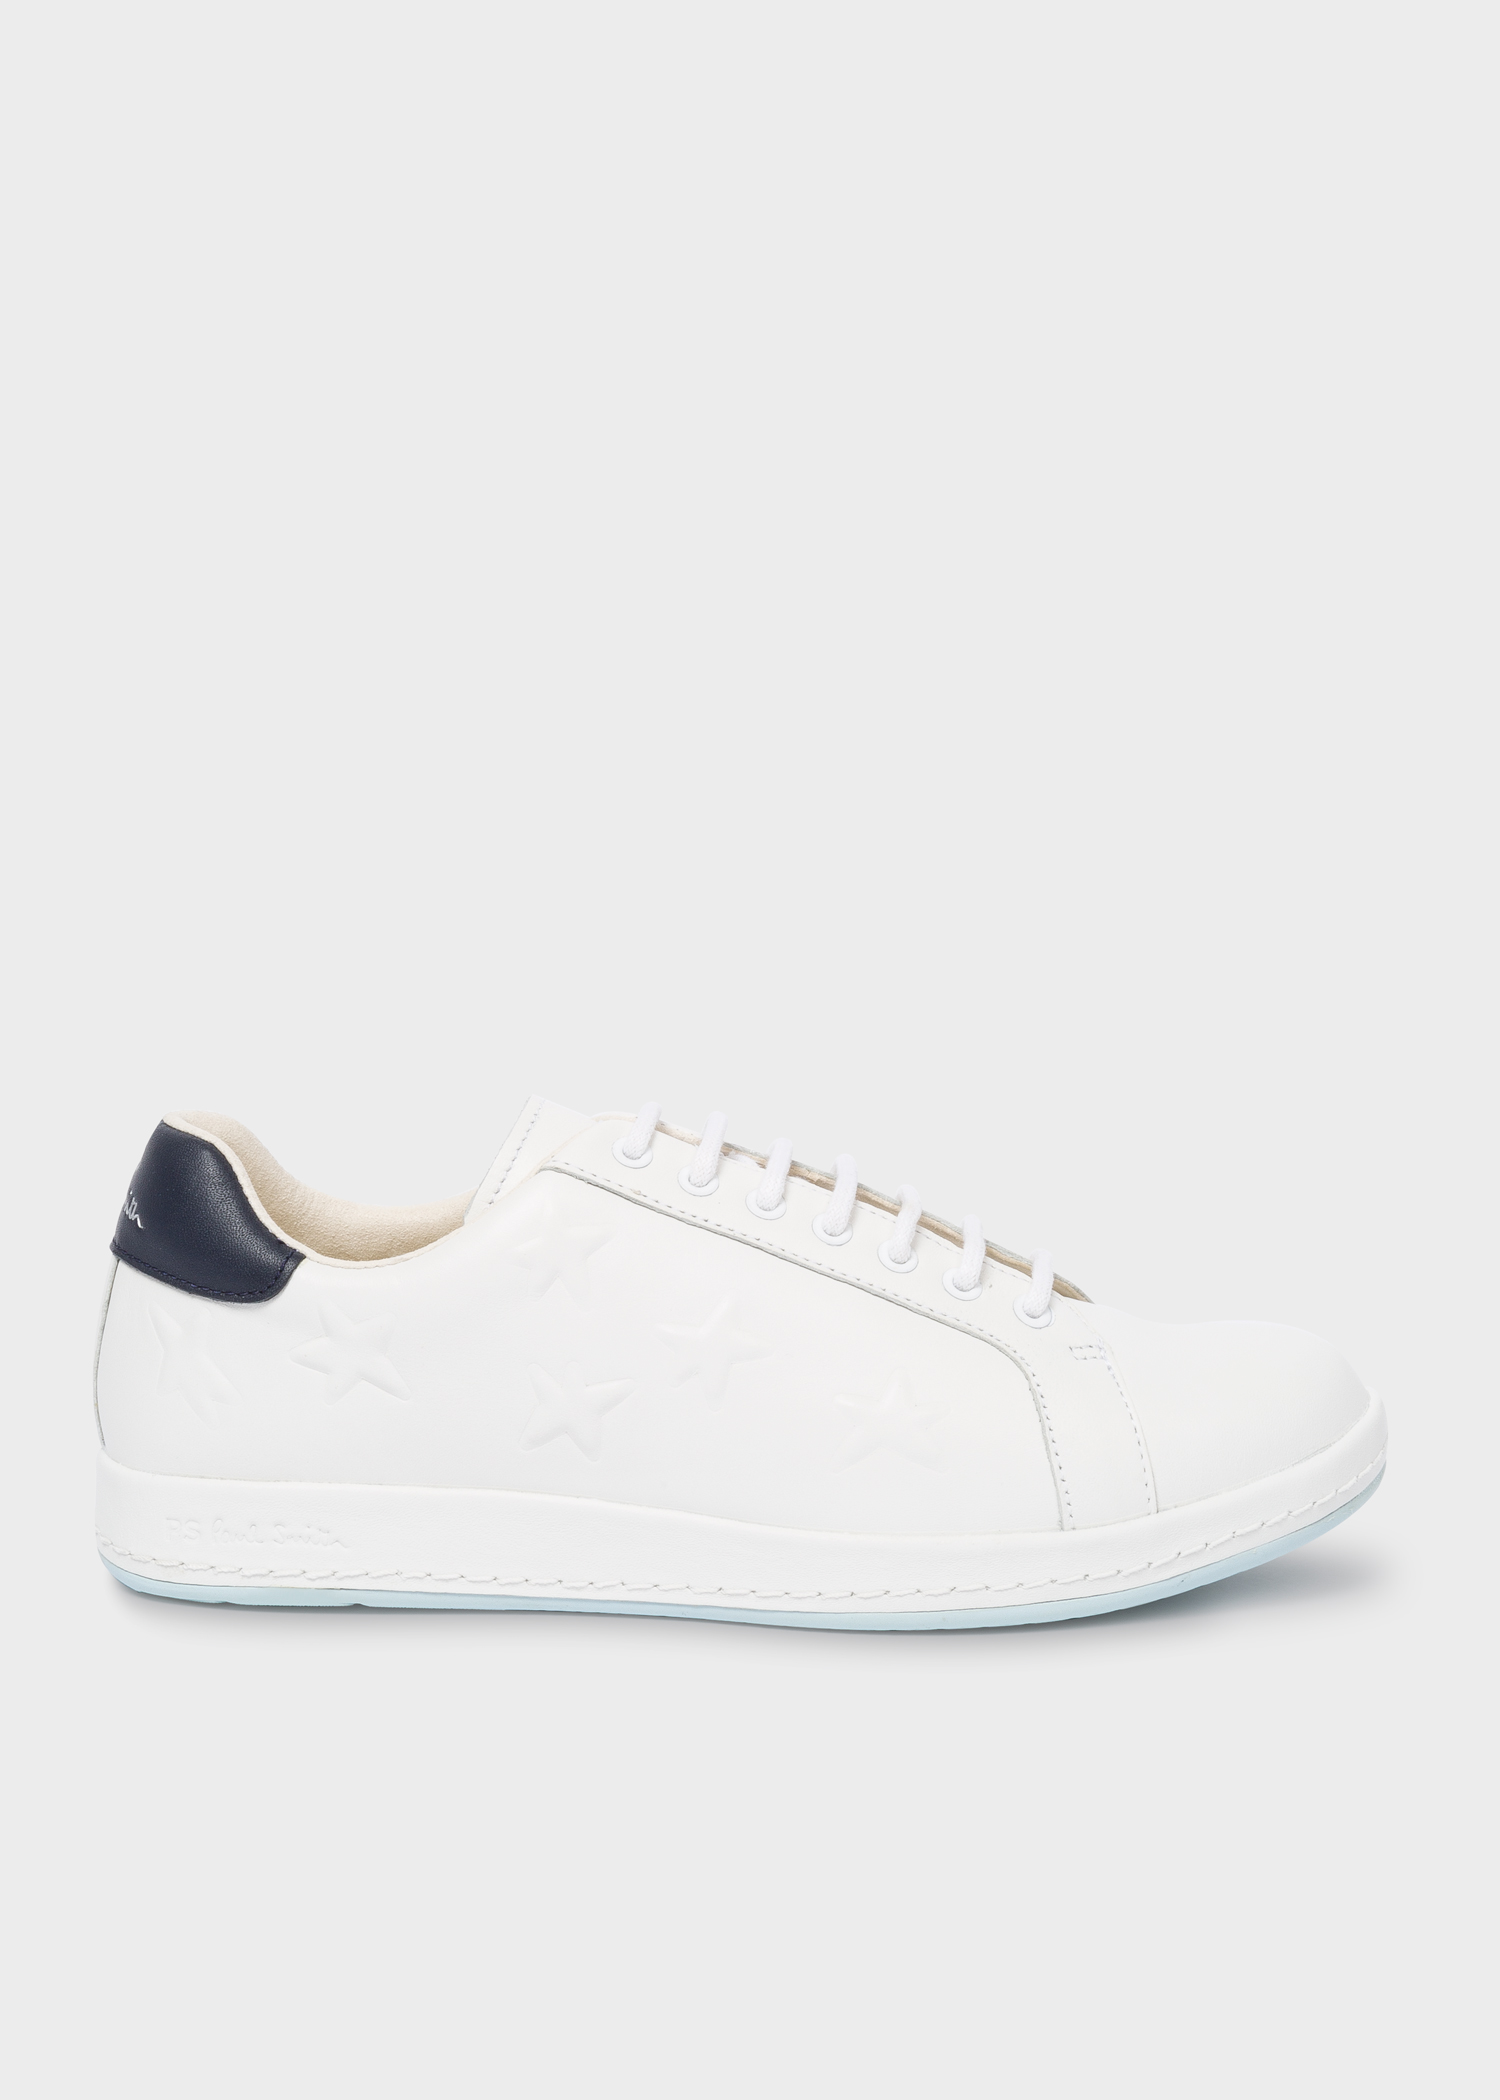 72730629ccc Paul Smith Women's White Leather 'Lapin' Trainers With Embossed Stars